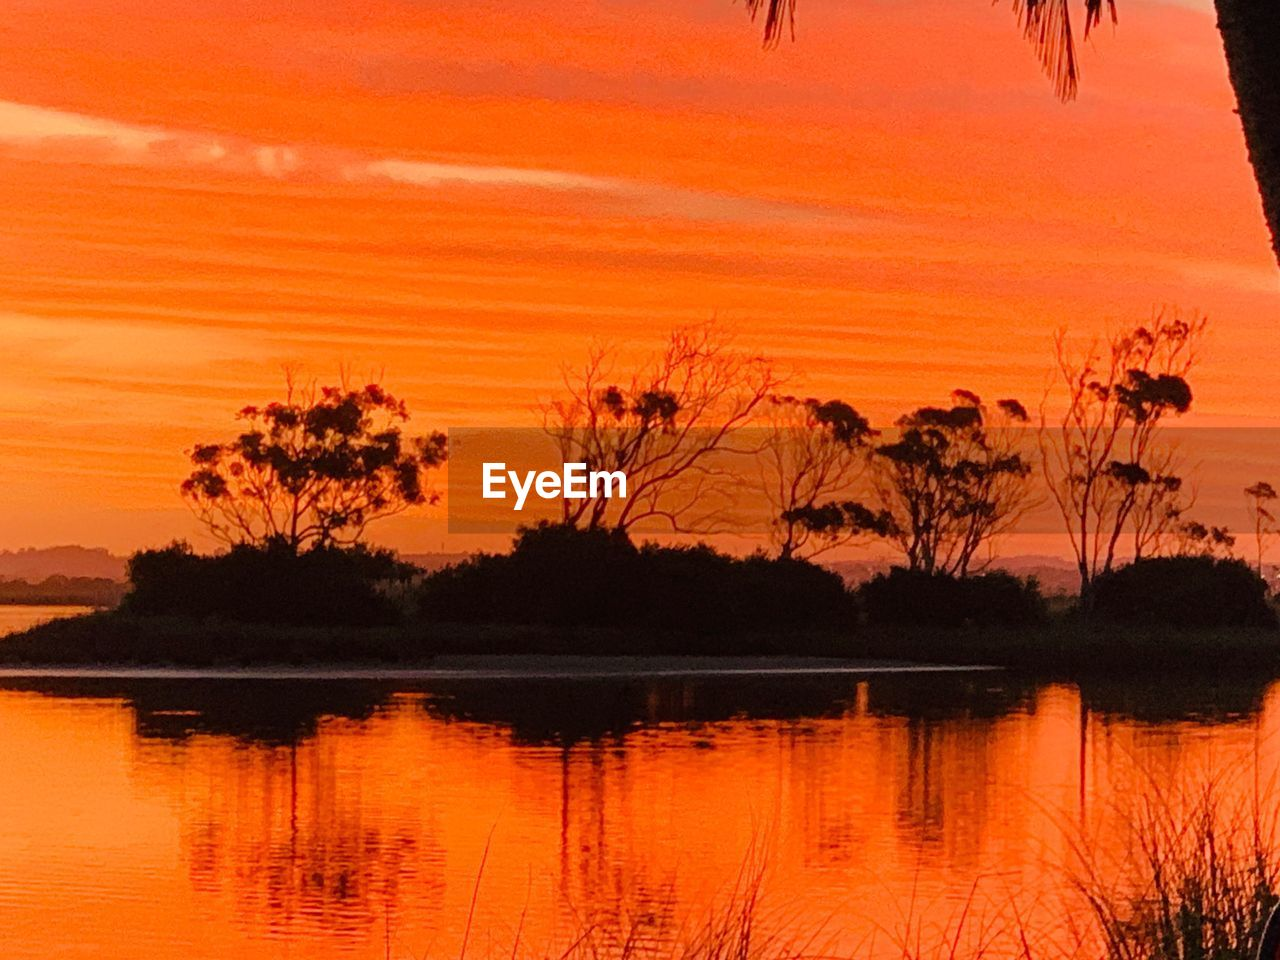 sunset, orange color, beauty in nature, scenics - nature, tree, sky, plant, tranquility, reflection, silhouette, water, lake, tranquil scene, no people, nature, idyllic, non-urban scene, waterfront, outdoors, romantic sky